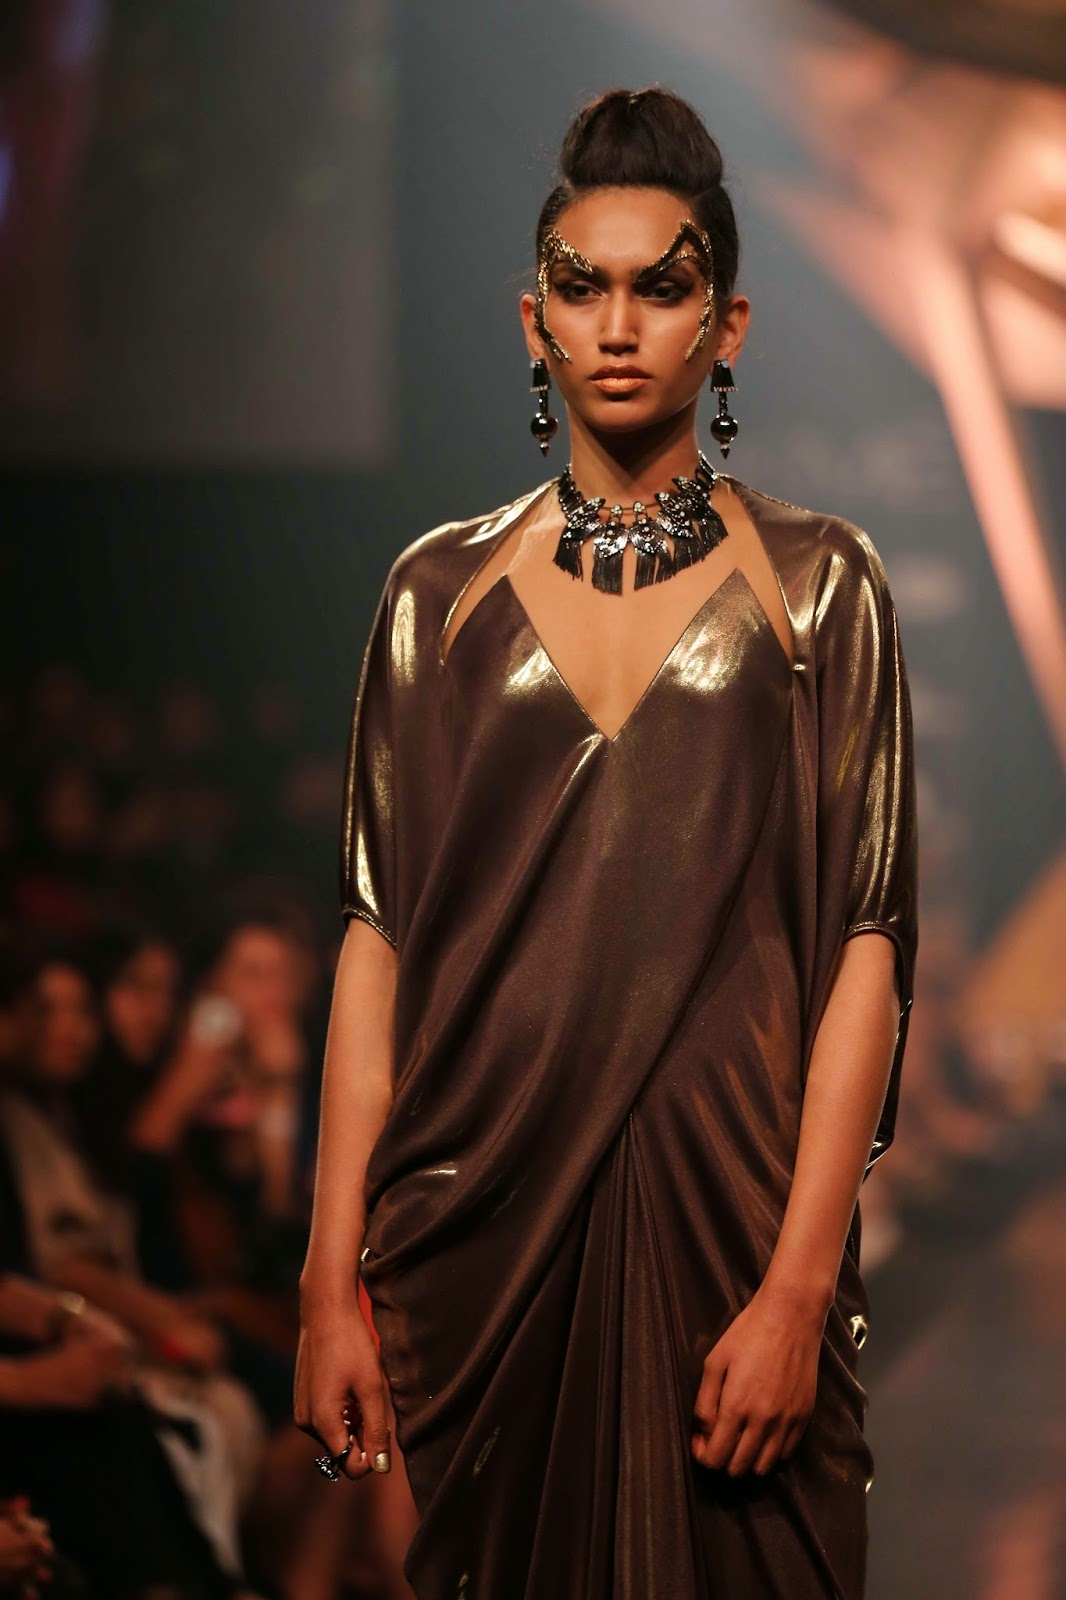 "The gold ribbed collars with a tribal centre interest, the silver multiple chains with a giant topaz pendant worn with matching bracelet, as well as danglers and the strands of diamonds framed by florets hung from a gold neck band were stunners. Ear cuffs and shoulder dusters in rustic styles along with matching bracelets completed the rich line-up of jewellery. The opulence and grandeur of the jewellery was remarkable as gold and precious gems united to create magic. Neckbands were impressively broad or detailed, while finger shields, corded neckpieces were mixed expertly to present jewels meant for a princess.   For conversation stopping statement jewellery, Mawi Keivom's ""Indian Odyssey"" collection did all the talking at Lakmé Fashion Week Summer/Resort 2014."